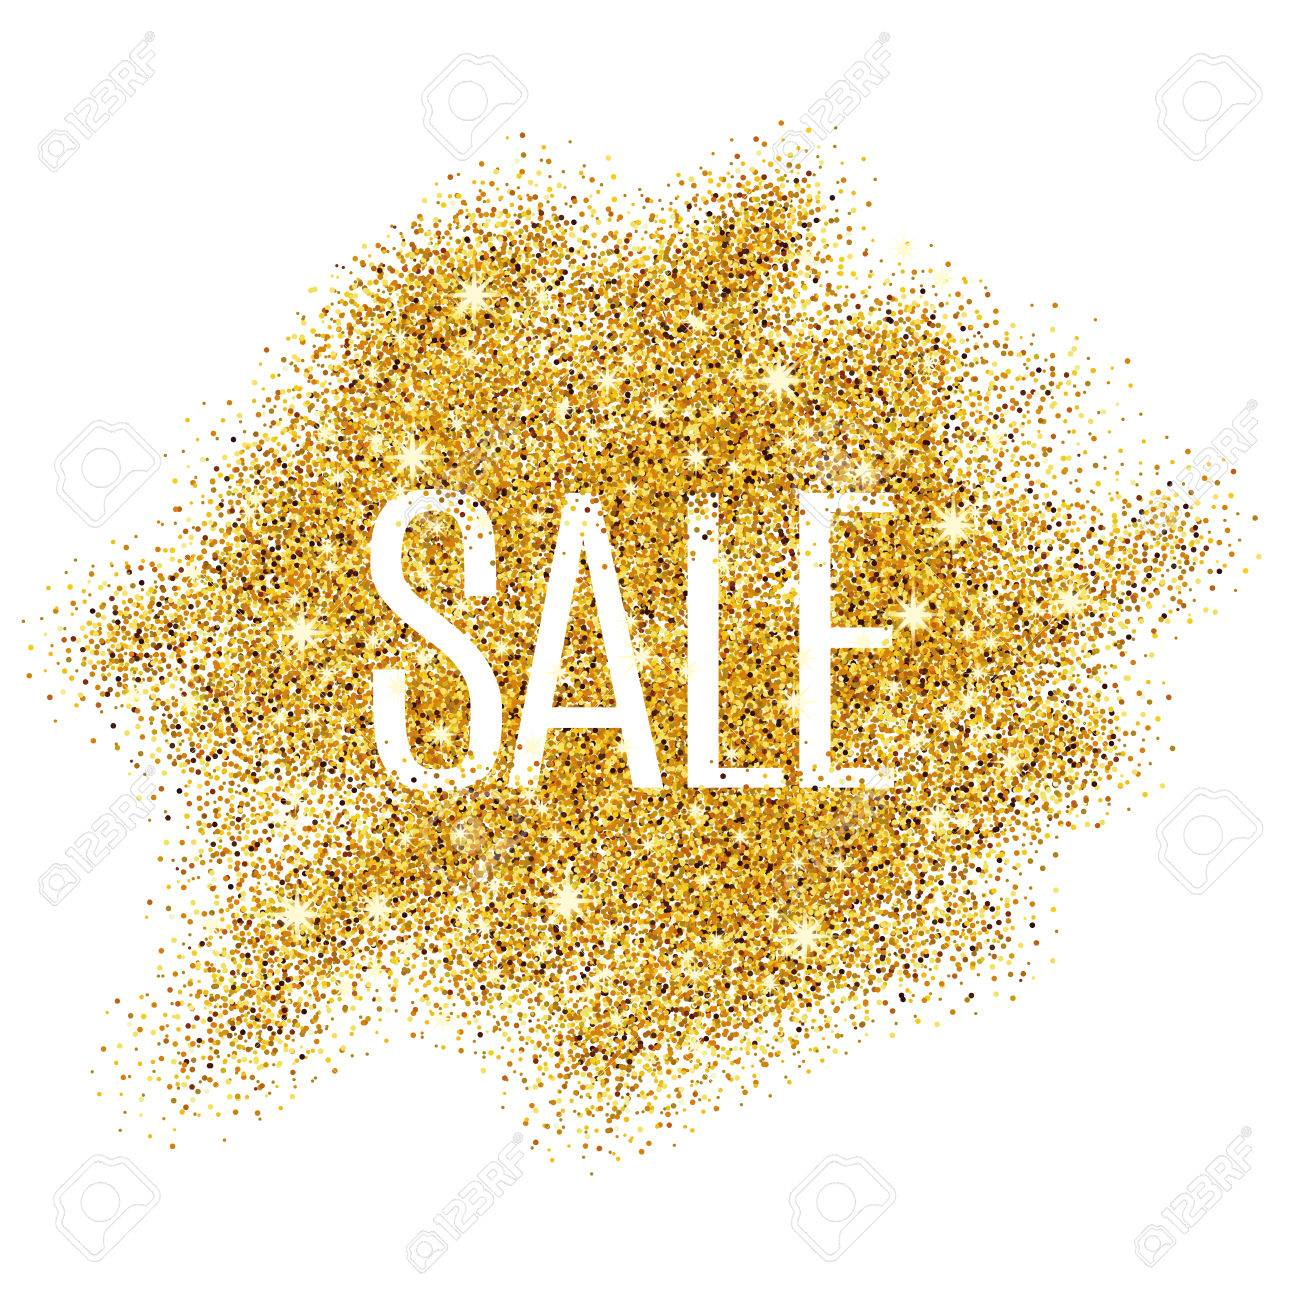 Gold sale background for poster, shopping, for sale sign, discount, marketing, selling, web, header. Abstract golden background for text, type, quote. Gold blur background - 52579341